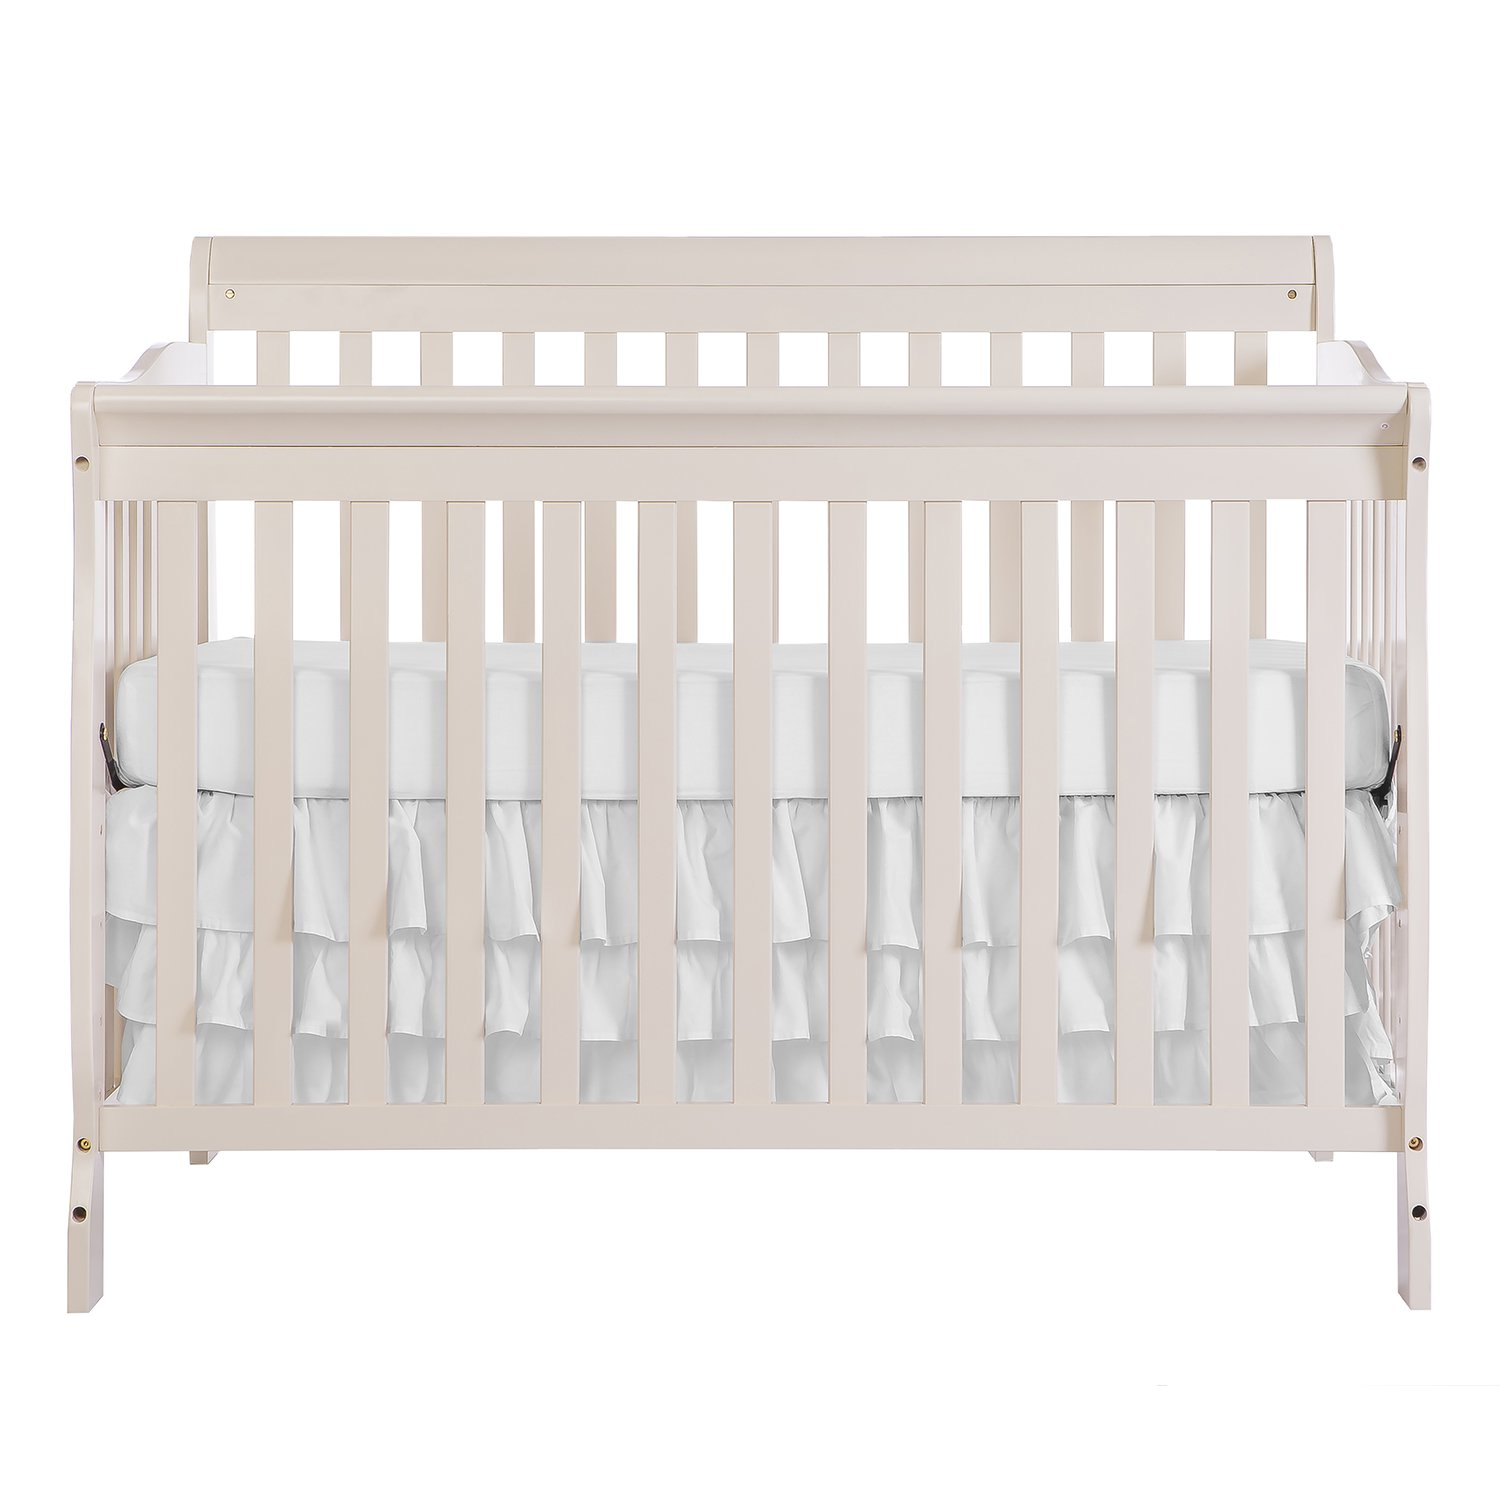 Crib for life prices - Dream On Me Ashton Convertible 5 In 1 Crib Pearl White